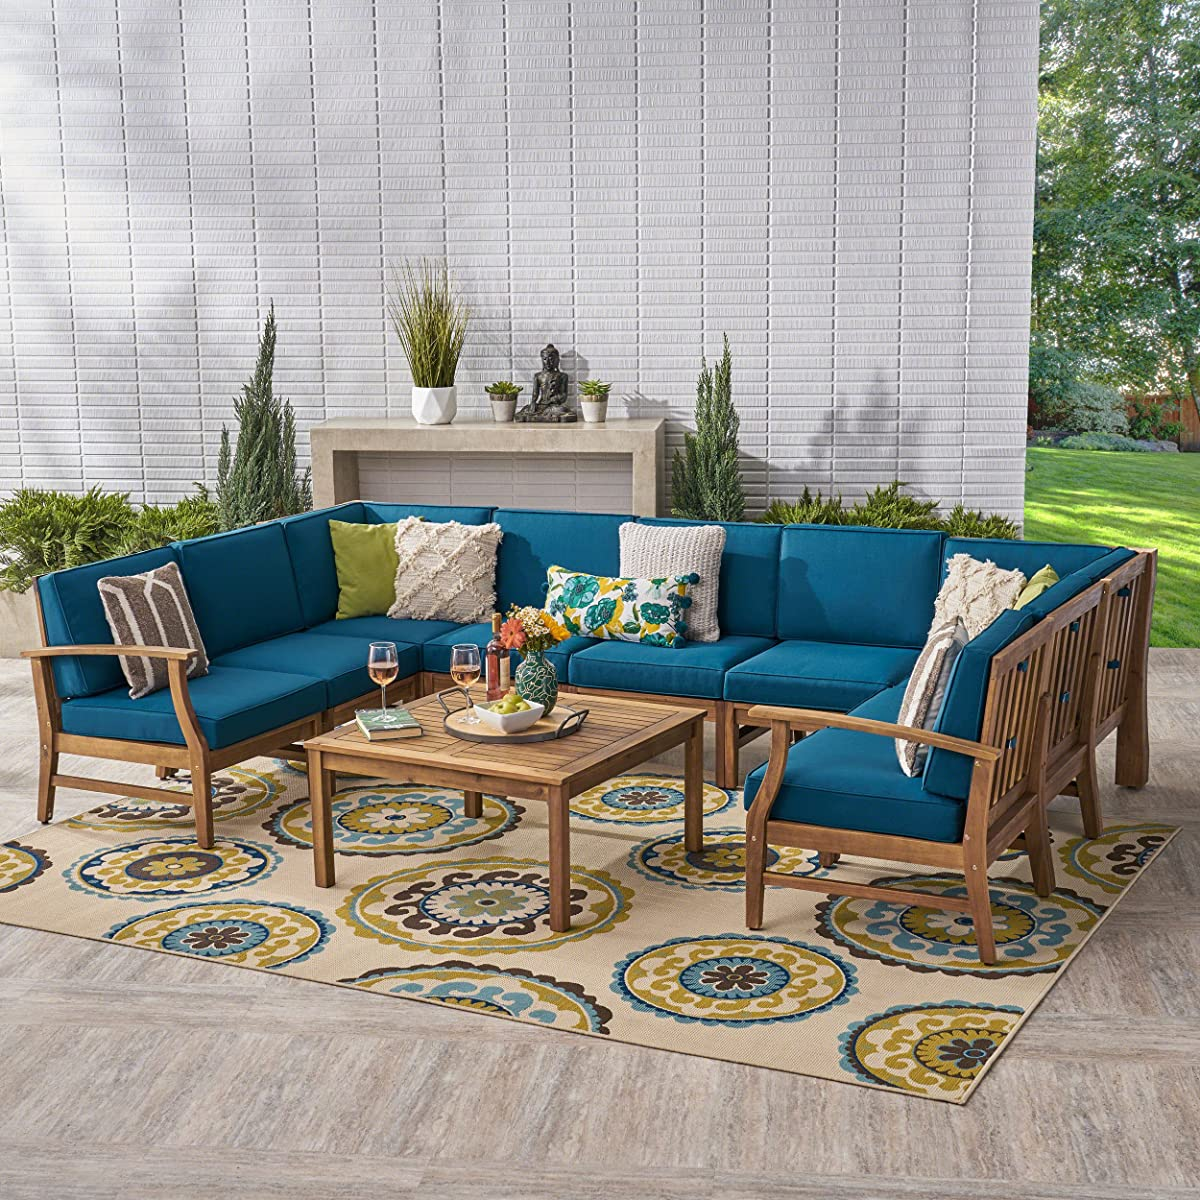 Great Deal Furniture Judith Outdoor 9 Seater Acacia Wood Sectional Sofa Set with Cushions, Teak with Blue Cushions